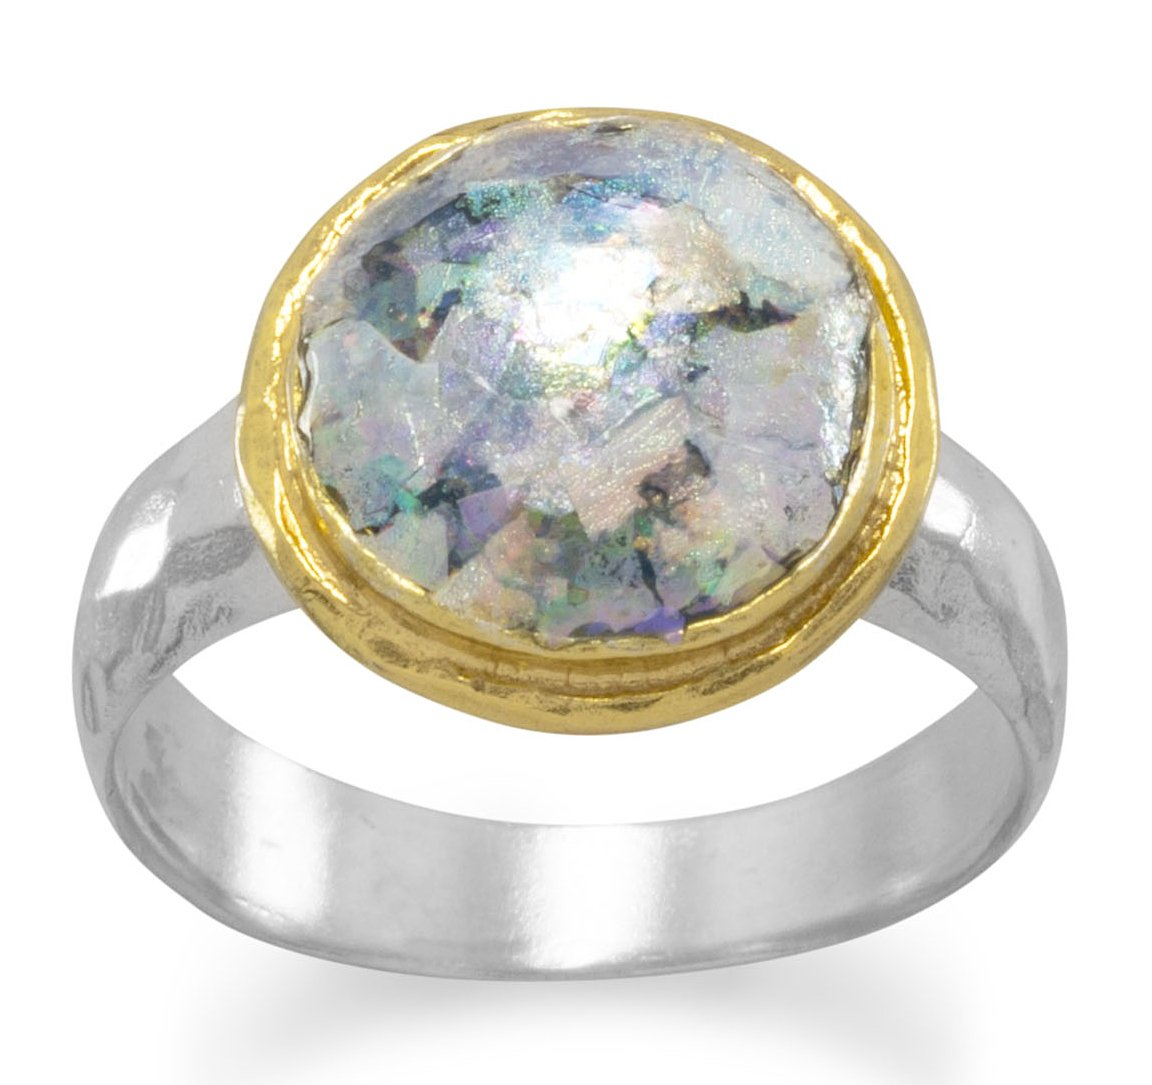 Hammered Sterling Silver/18K Gold Ring, 9mm Ancient Roman Glass, Sizes 6-9, 1/2 inch wide